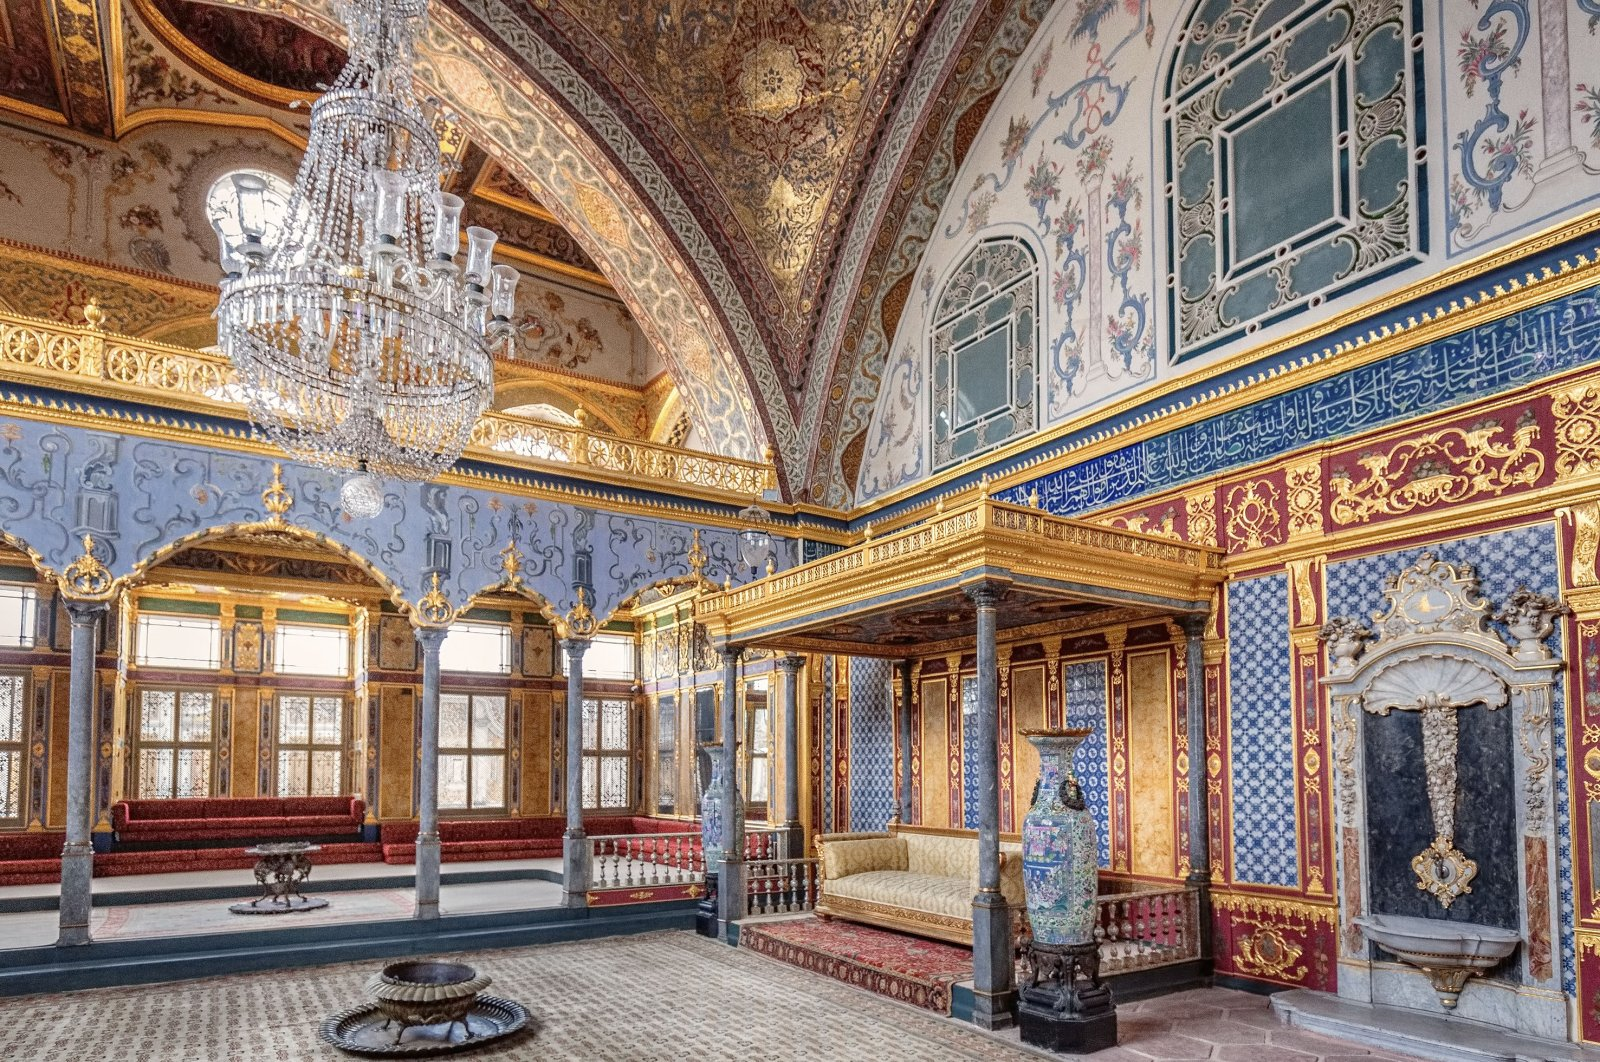 Topkapı Palace is one of the museums available for virtual tours. (Ruslan Kaln / iStock Photo)